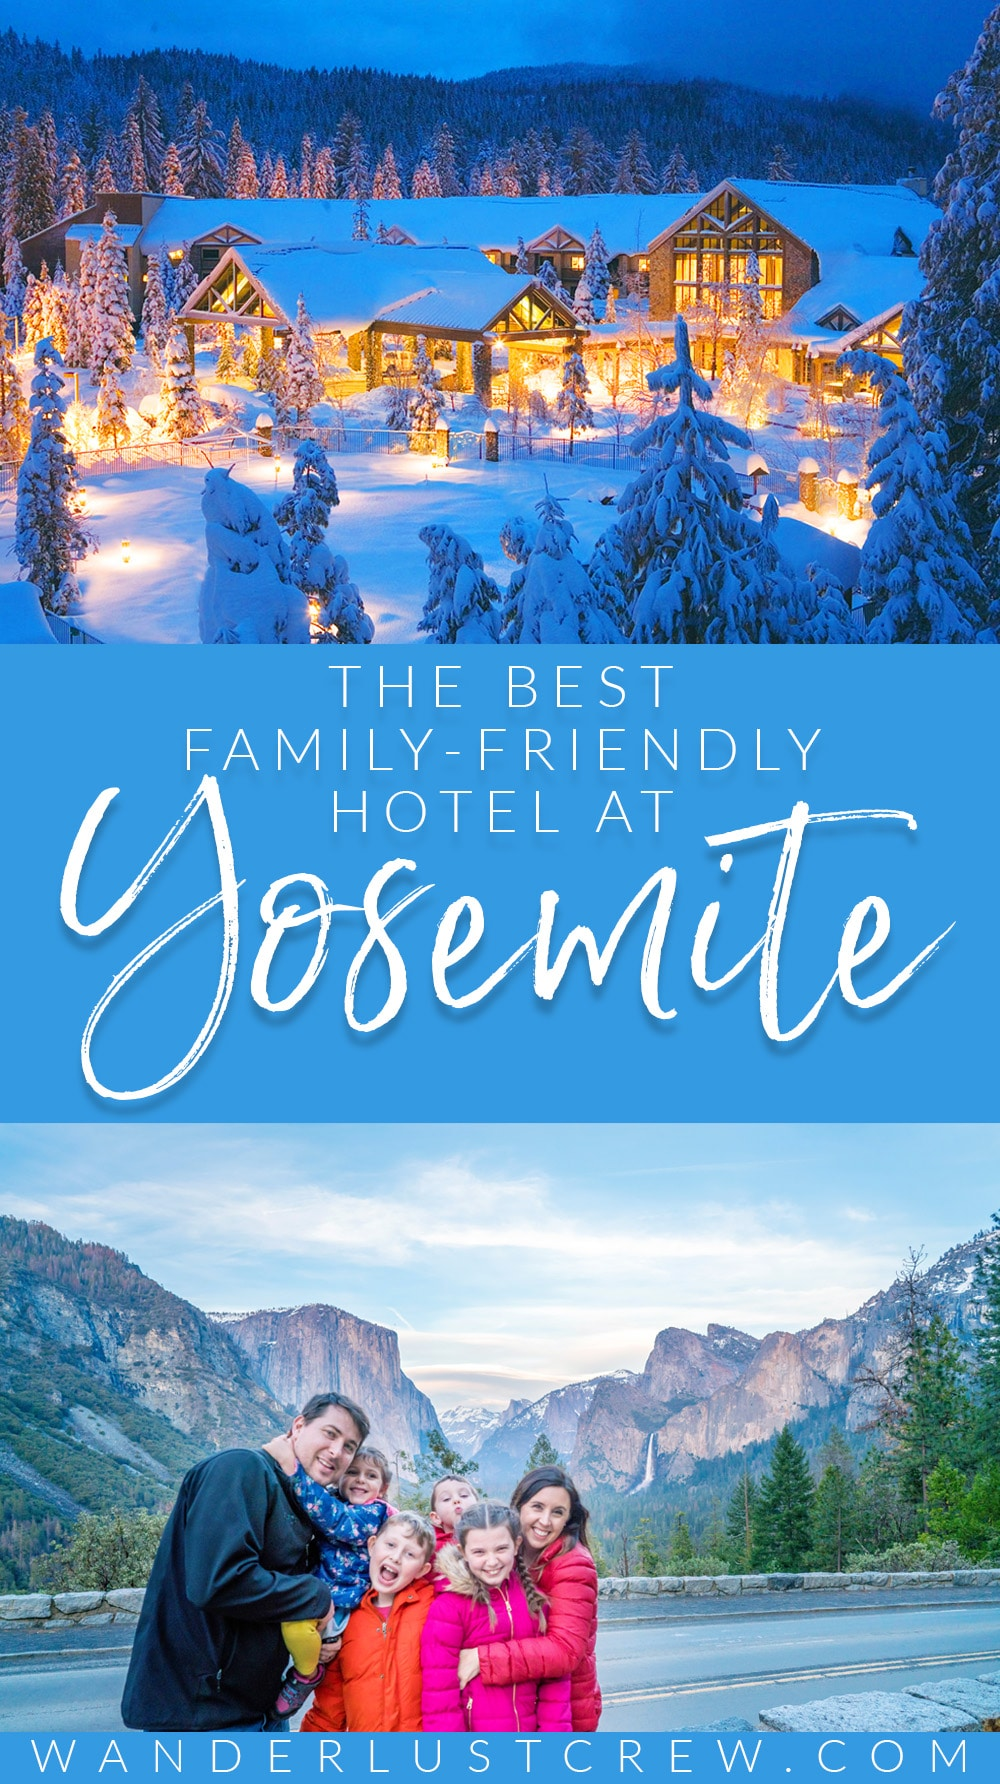 The Best Family-Friendly Hotel at Yosemite National Park